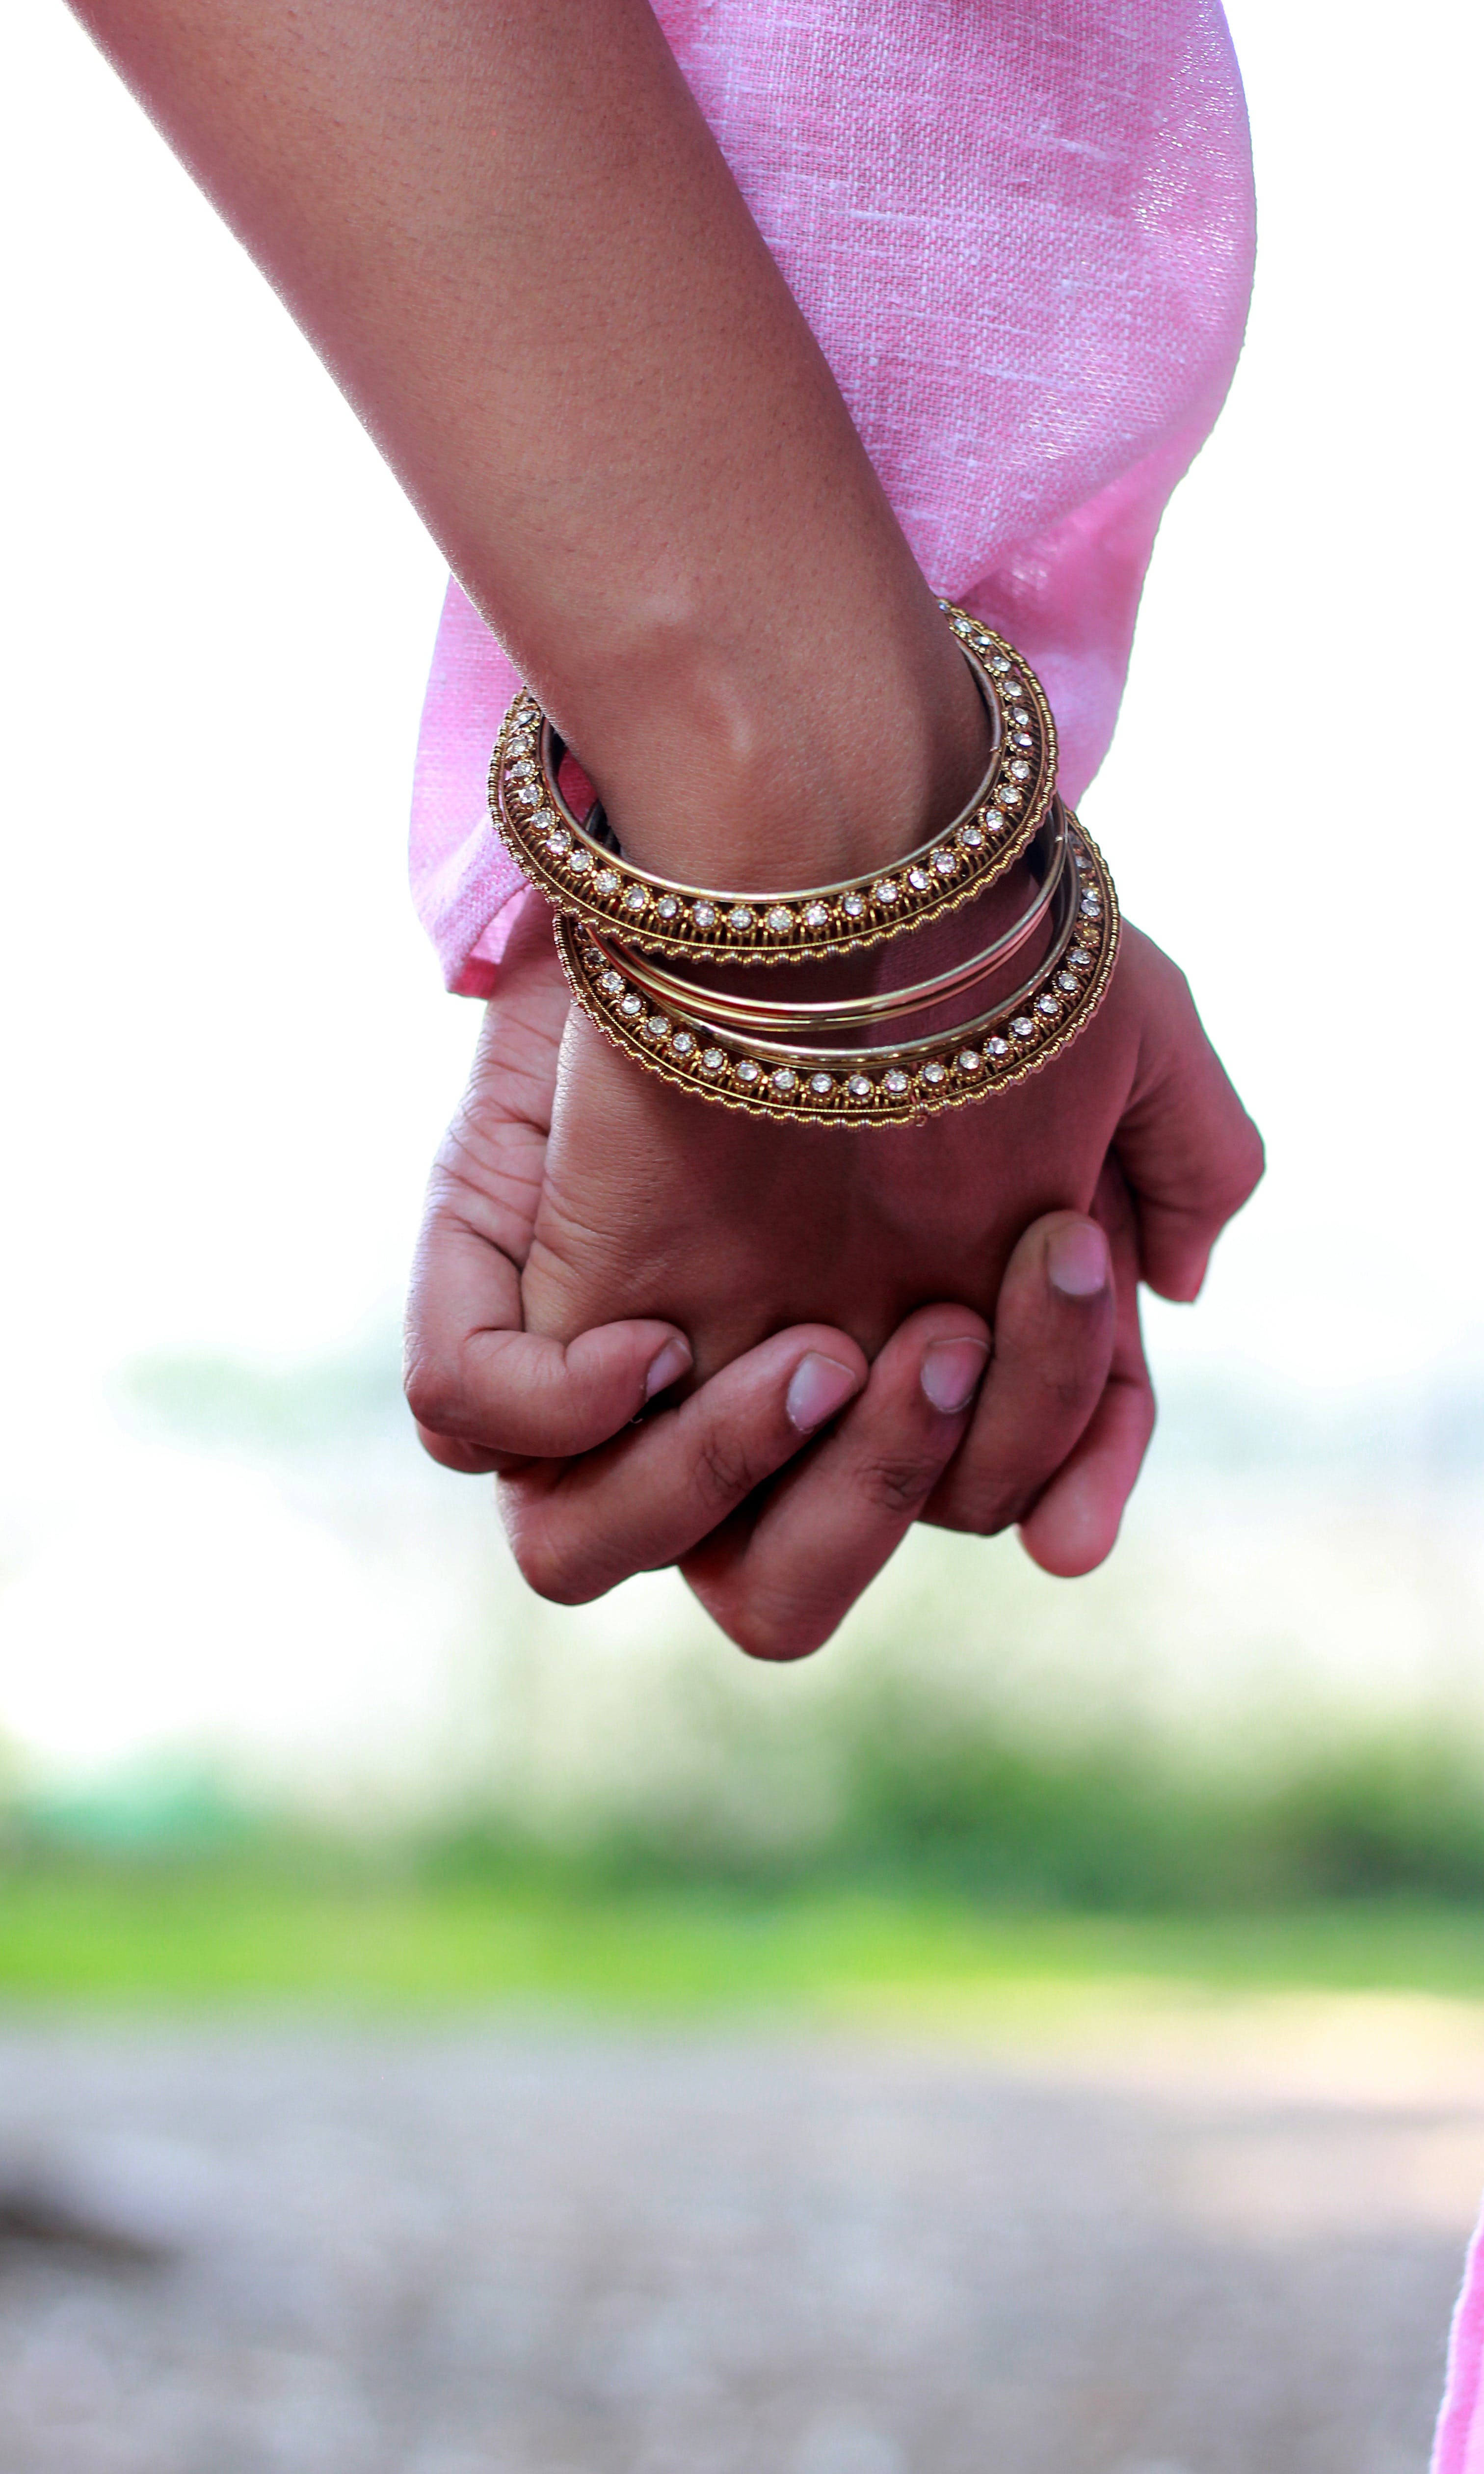 Free stock photo of love, together, holding hands, happinesss